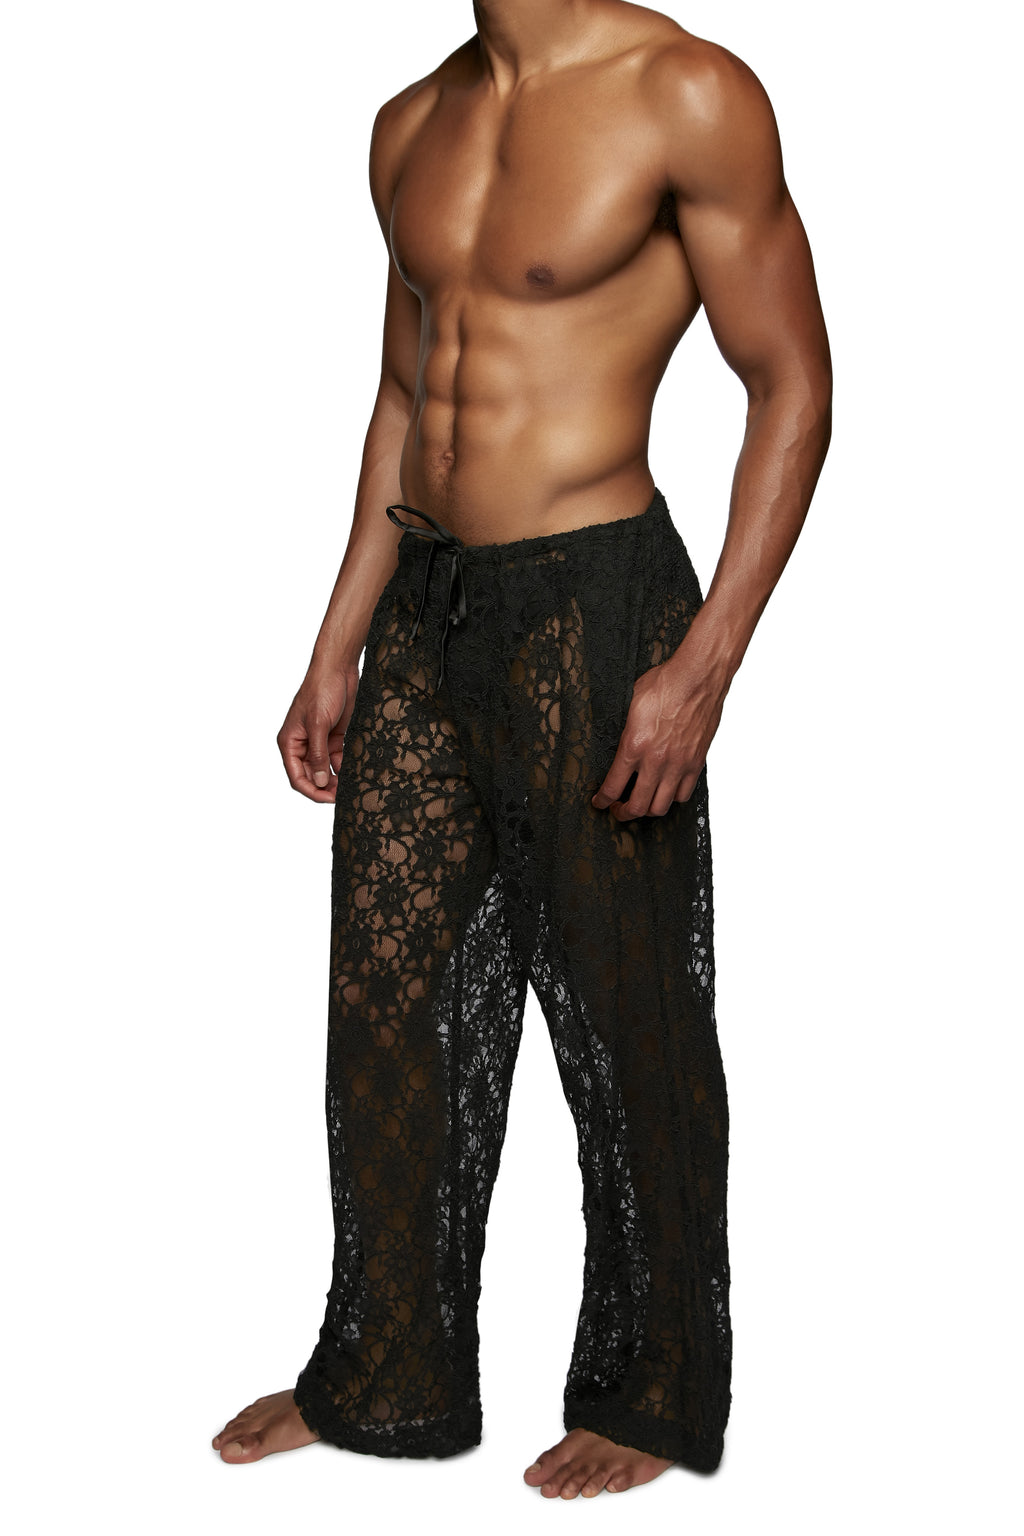 DRAWSTRING PANT in LACE - MENAGERIE Intimates MENS Lingerie